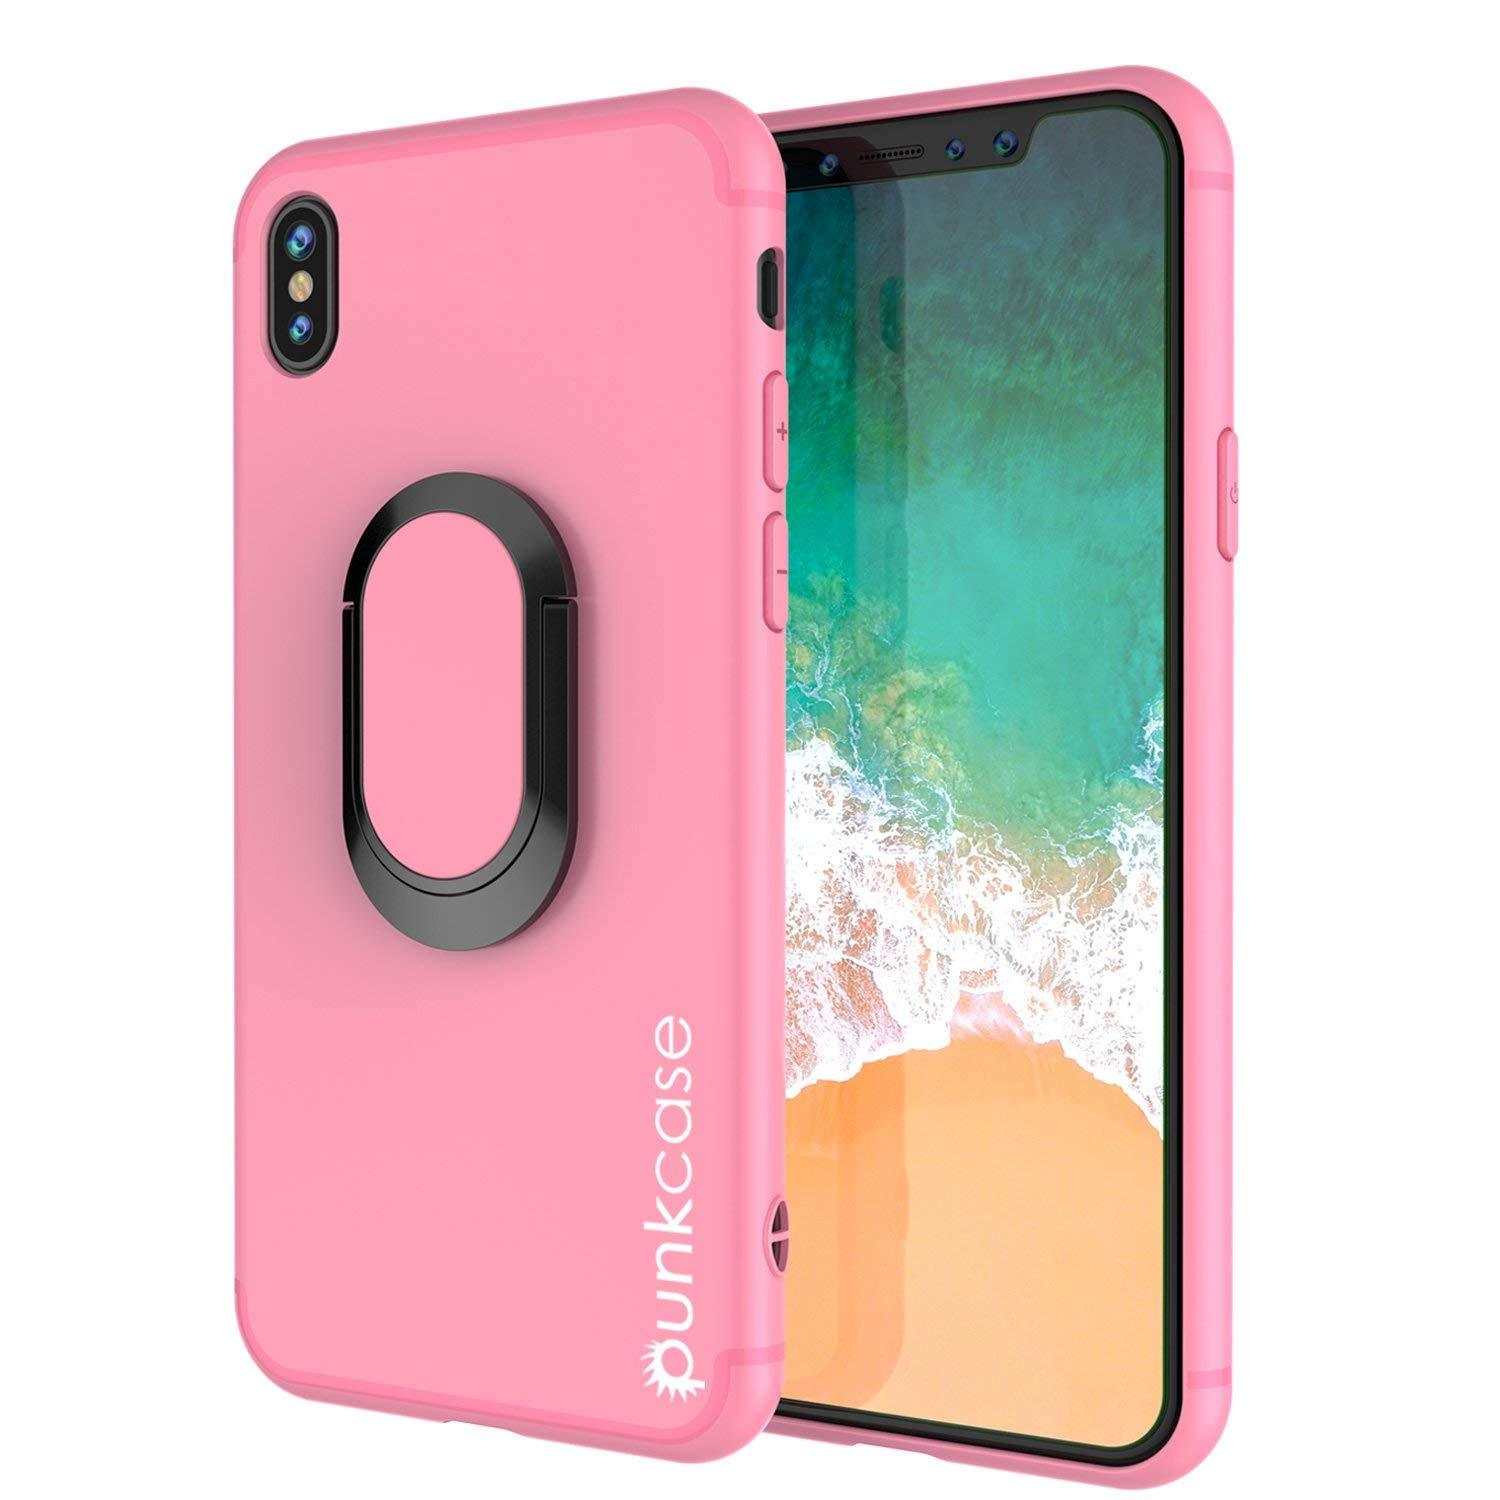 iPhone XR Case, Punkcase Magnetix Protective TPU Cover W/ Kickstand, Tempered Glass Screen Protector [Pink]